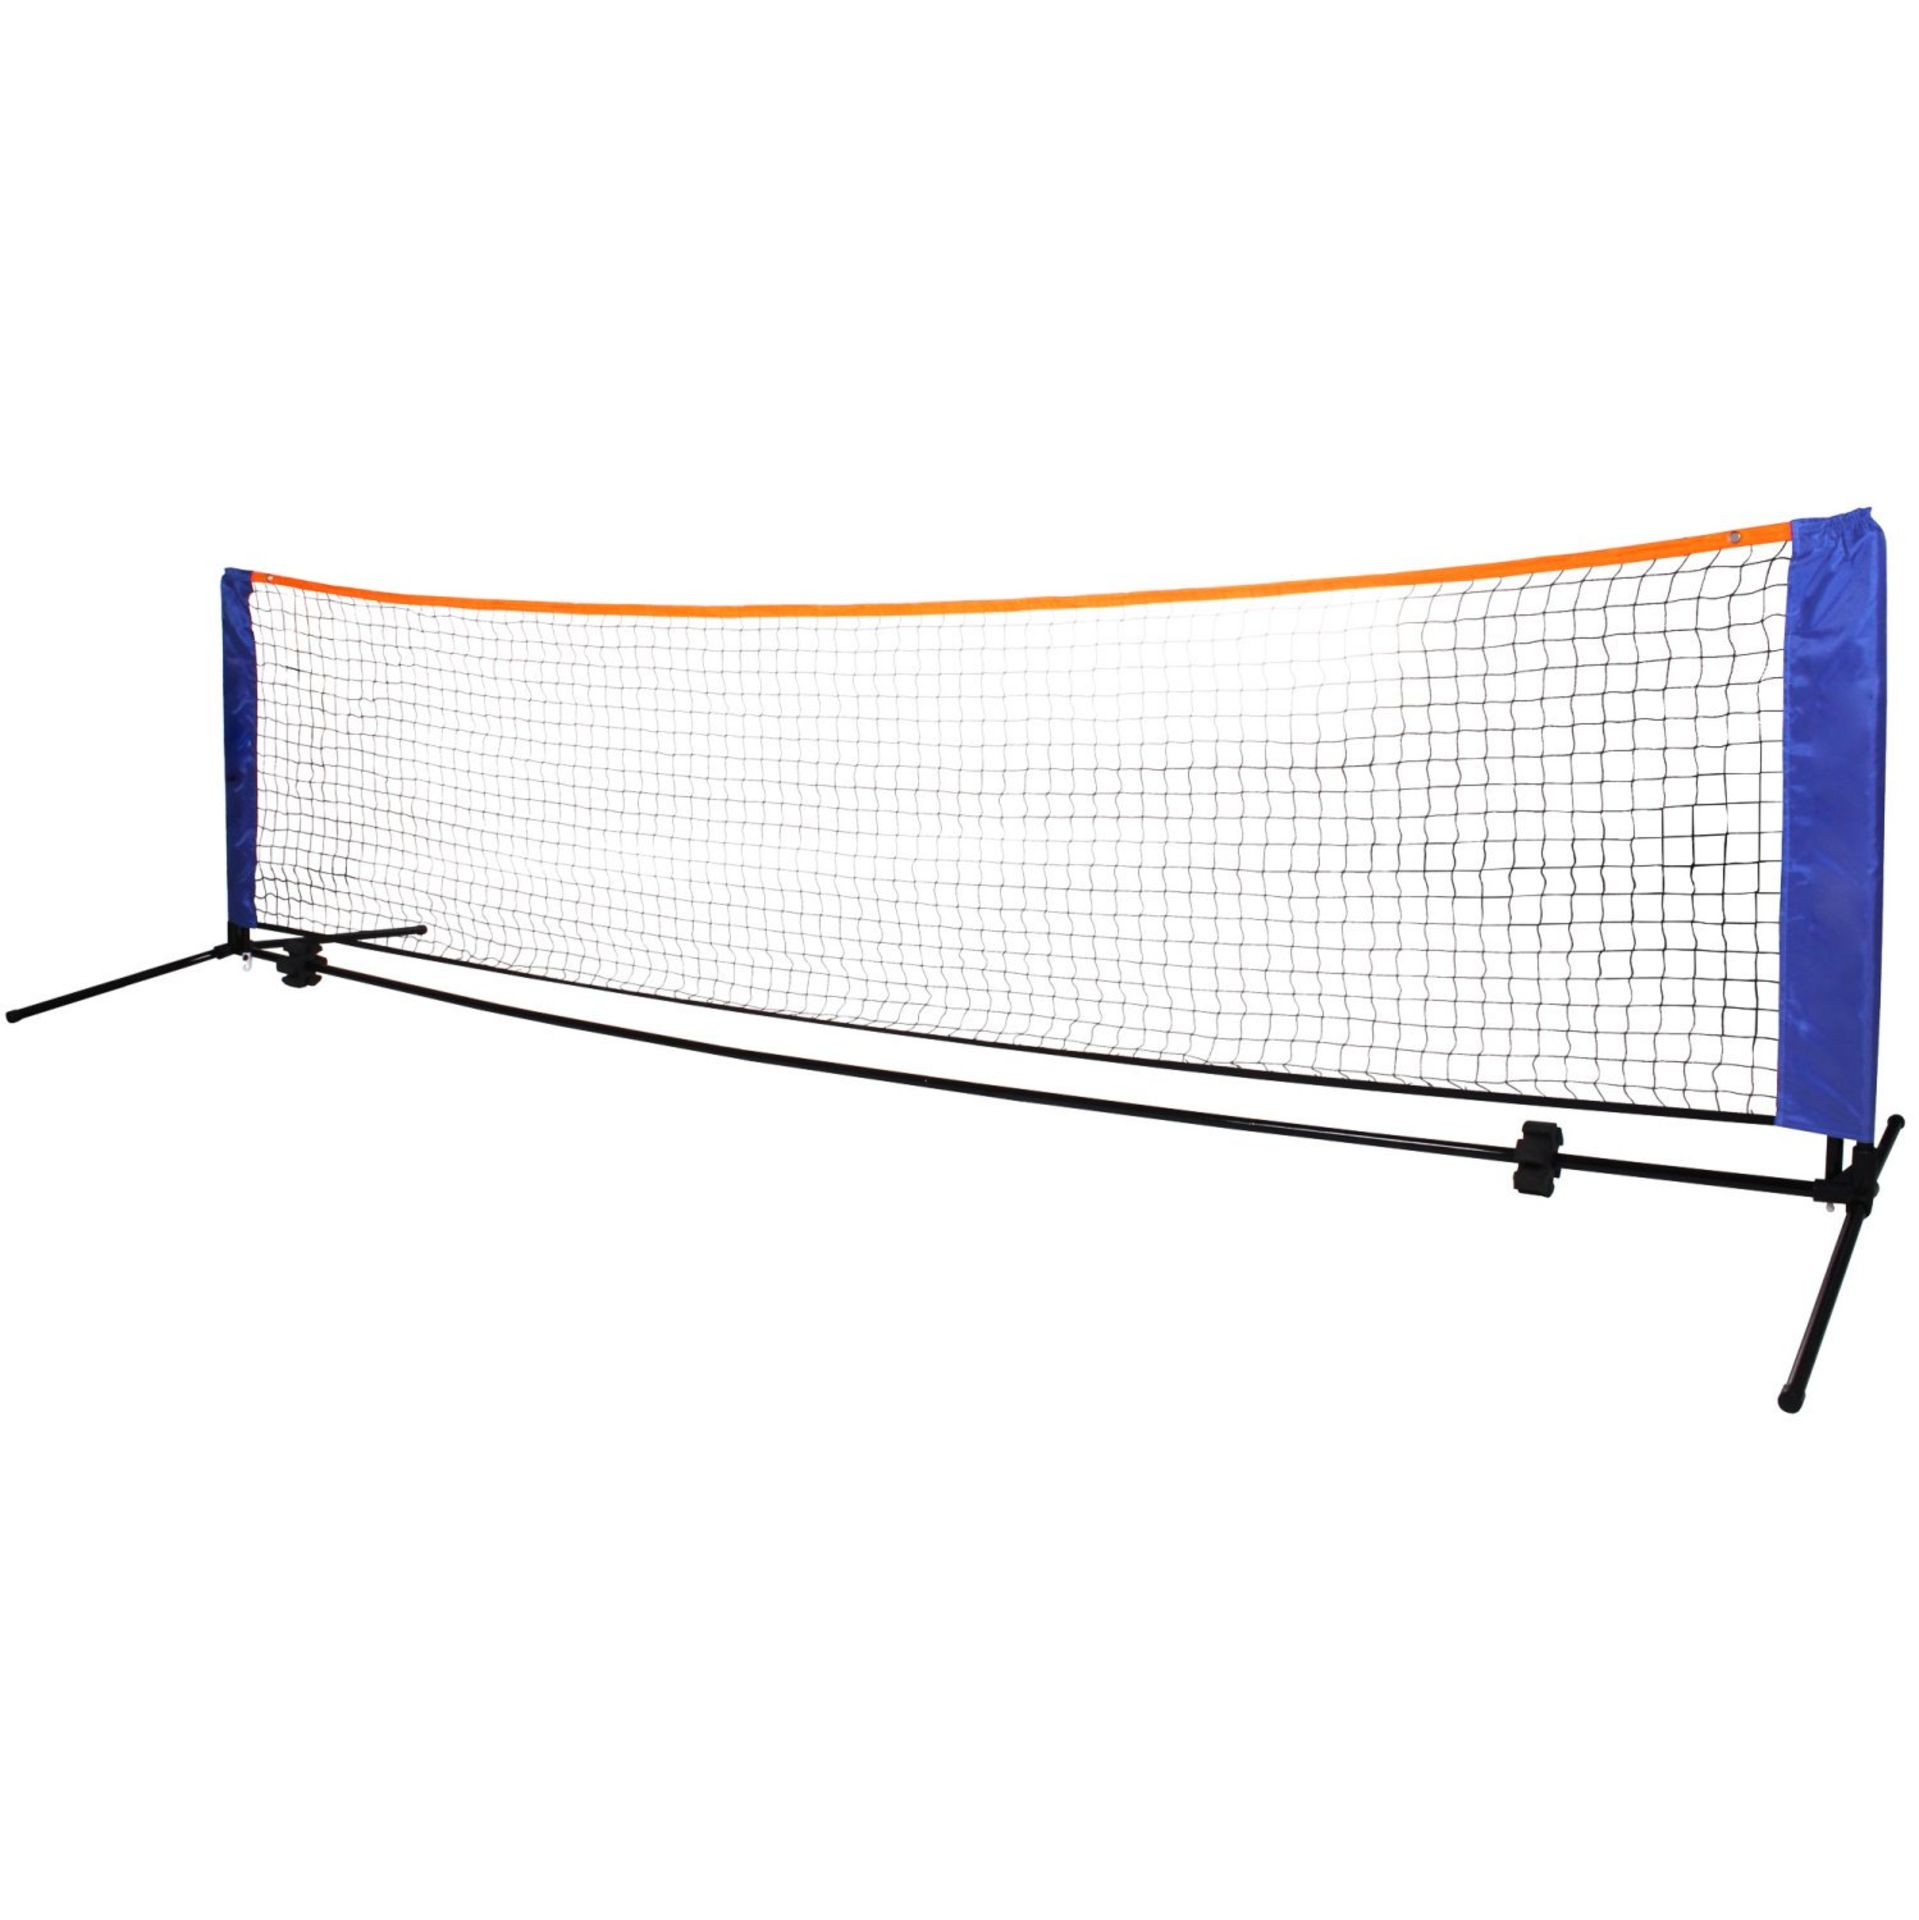 (RL29) Medium 4m Adjustable Foldable Badminton Tennis Volleyball Net The posts are able to... - Image 2 of 2